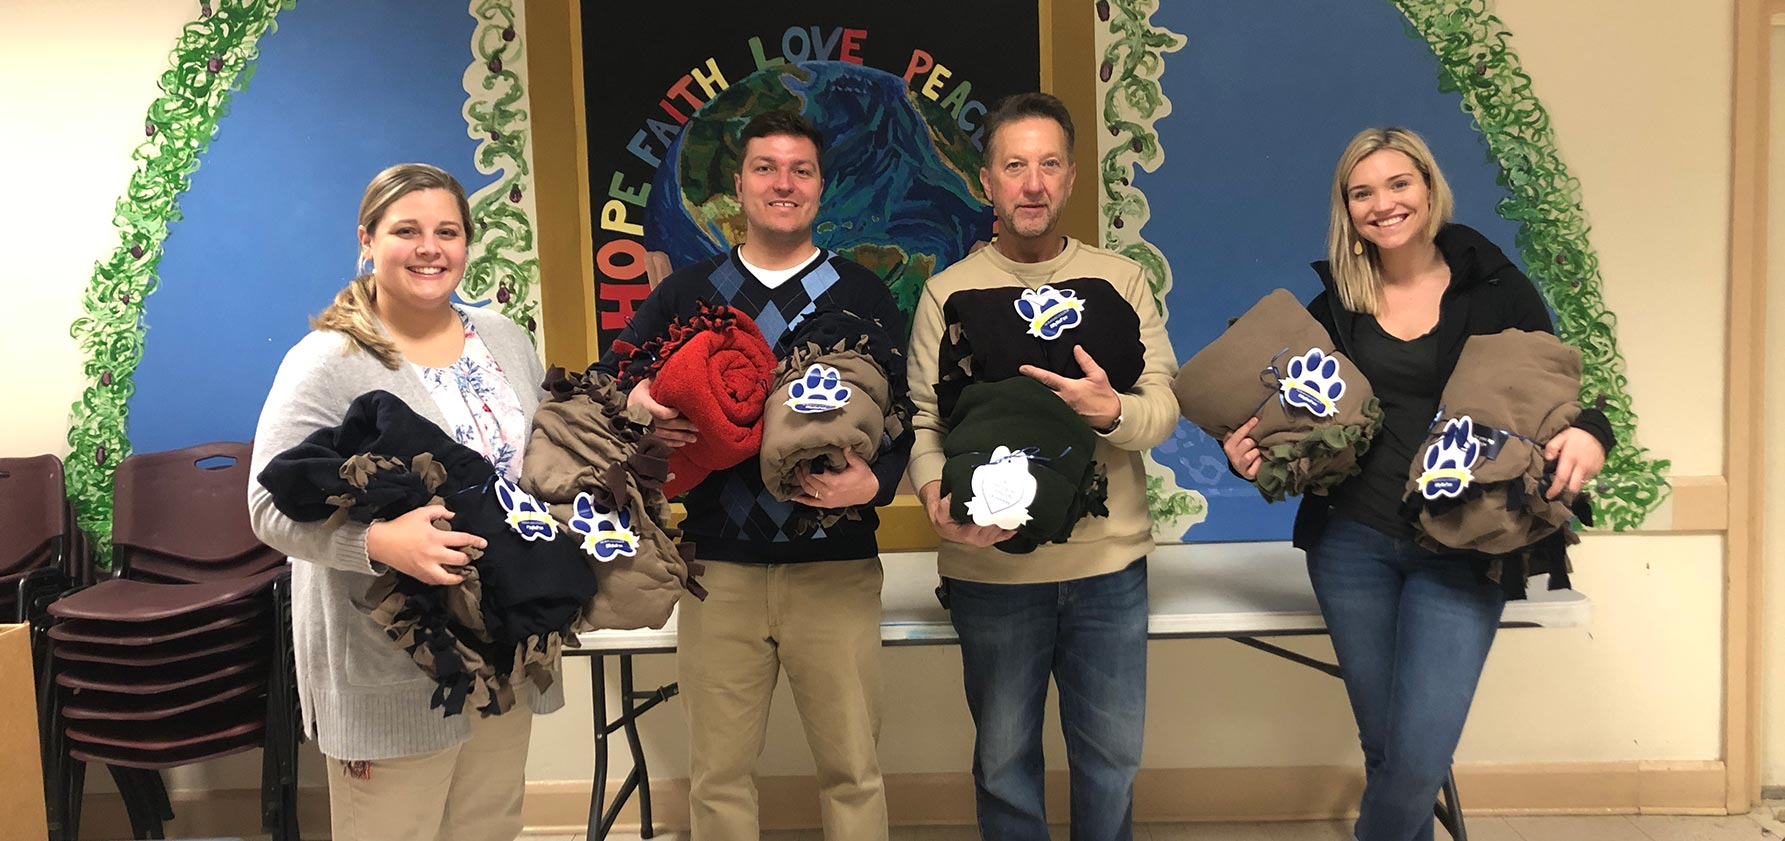 Paula Young, Dan Miller, Tom Pheiffer, and Grace Young at the Northeast Community Center receive blankets made during Moravian College's 2019 Heritage Day.